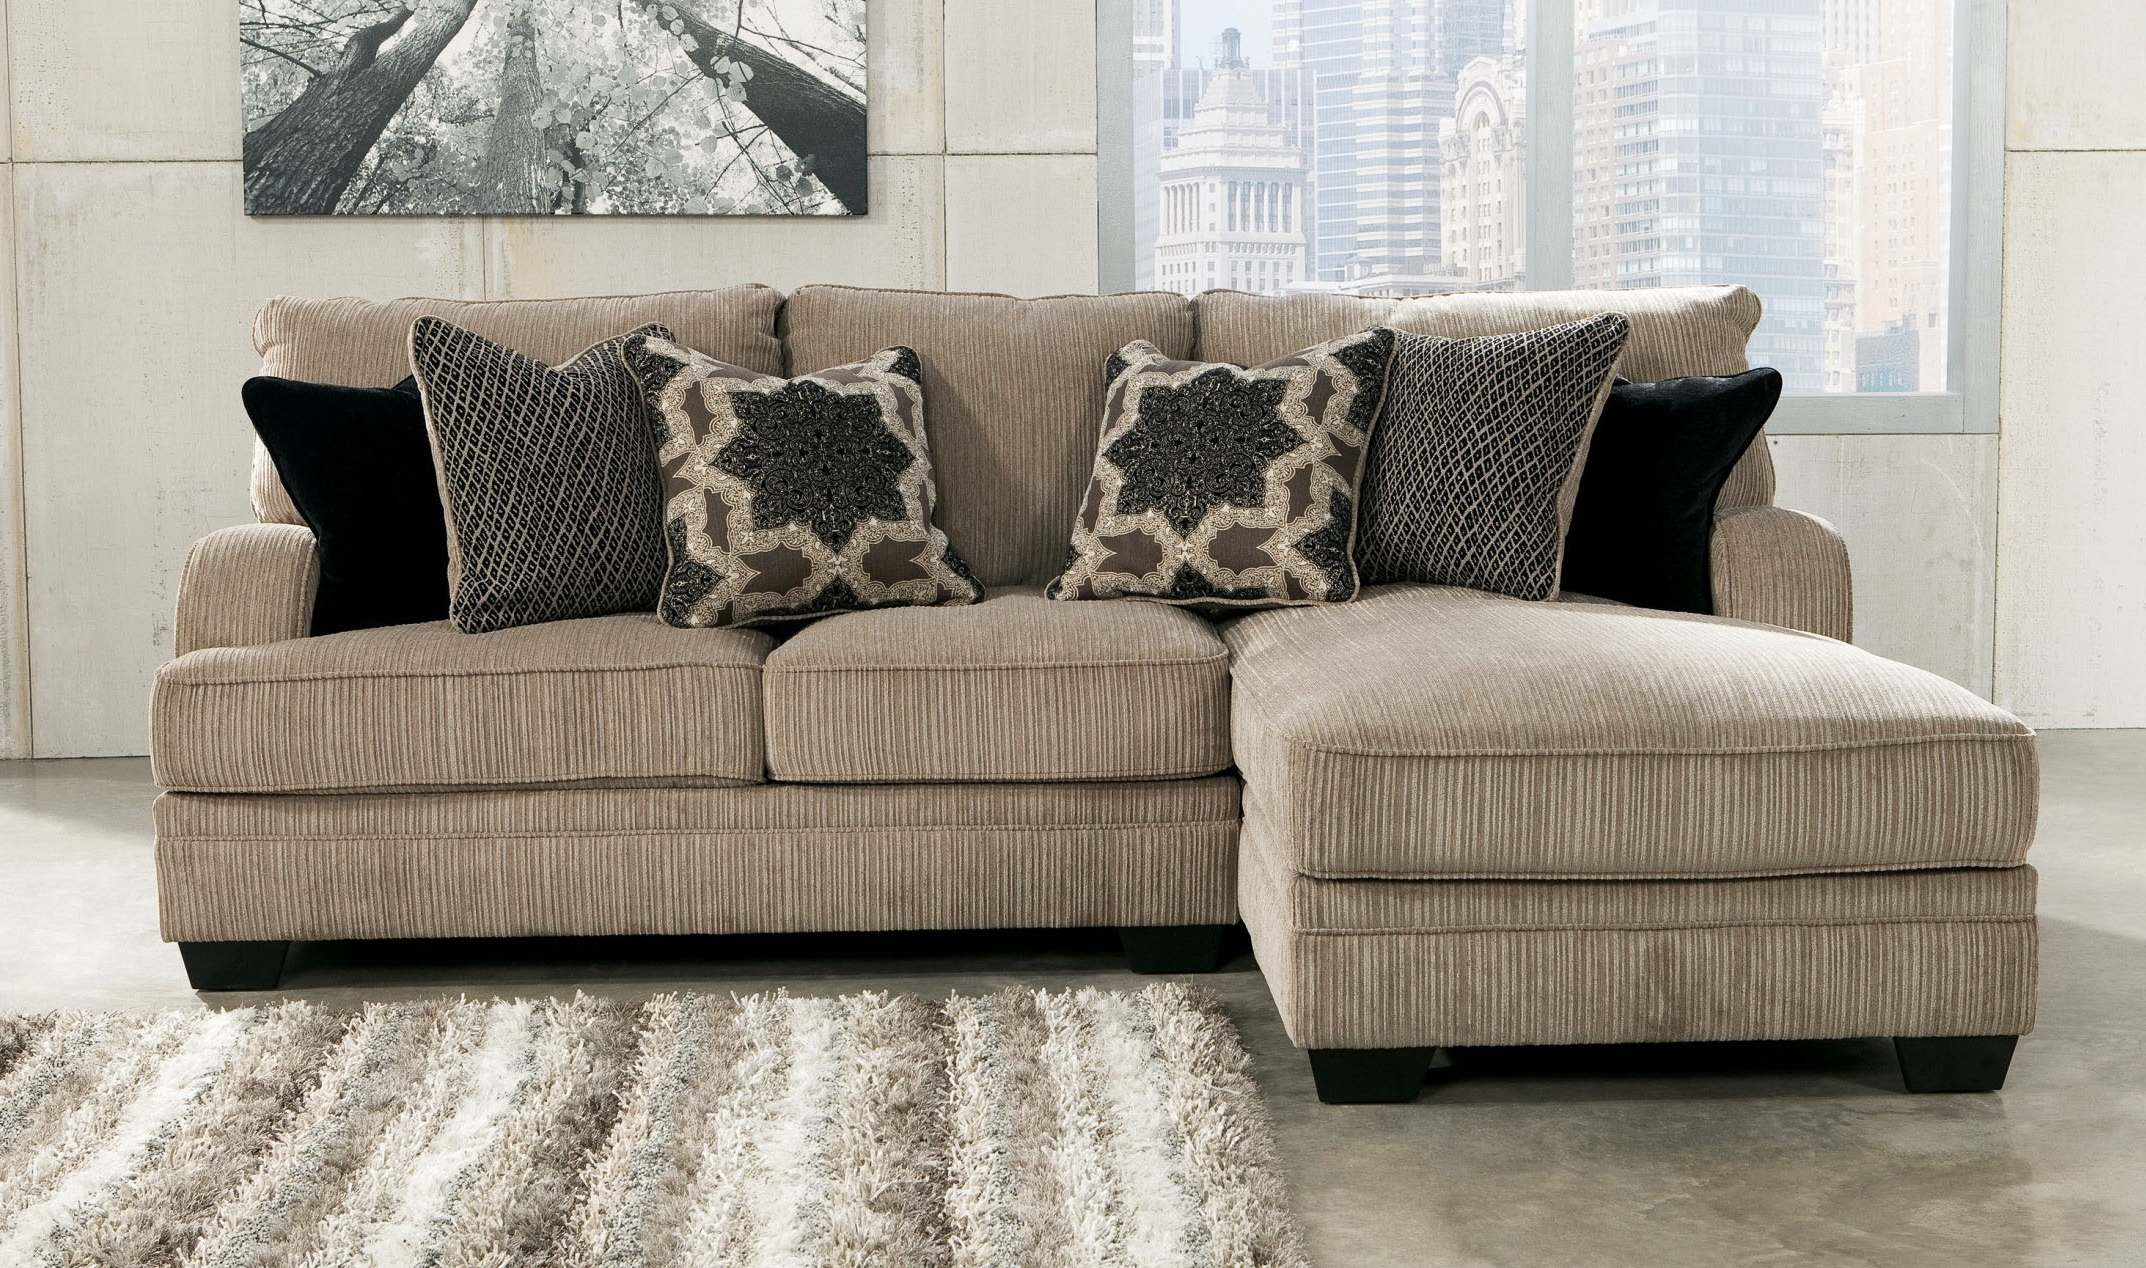 2018 Small Sectional Sofas With Chaise Lounge Pertaining To Luxury Small Sectional Sofa With Chaise Lounge 79 For Stickley (View 6 of 15)